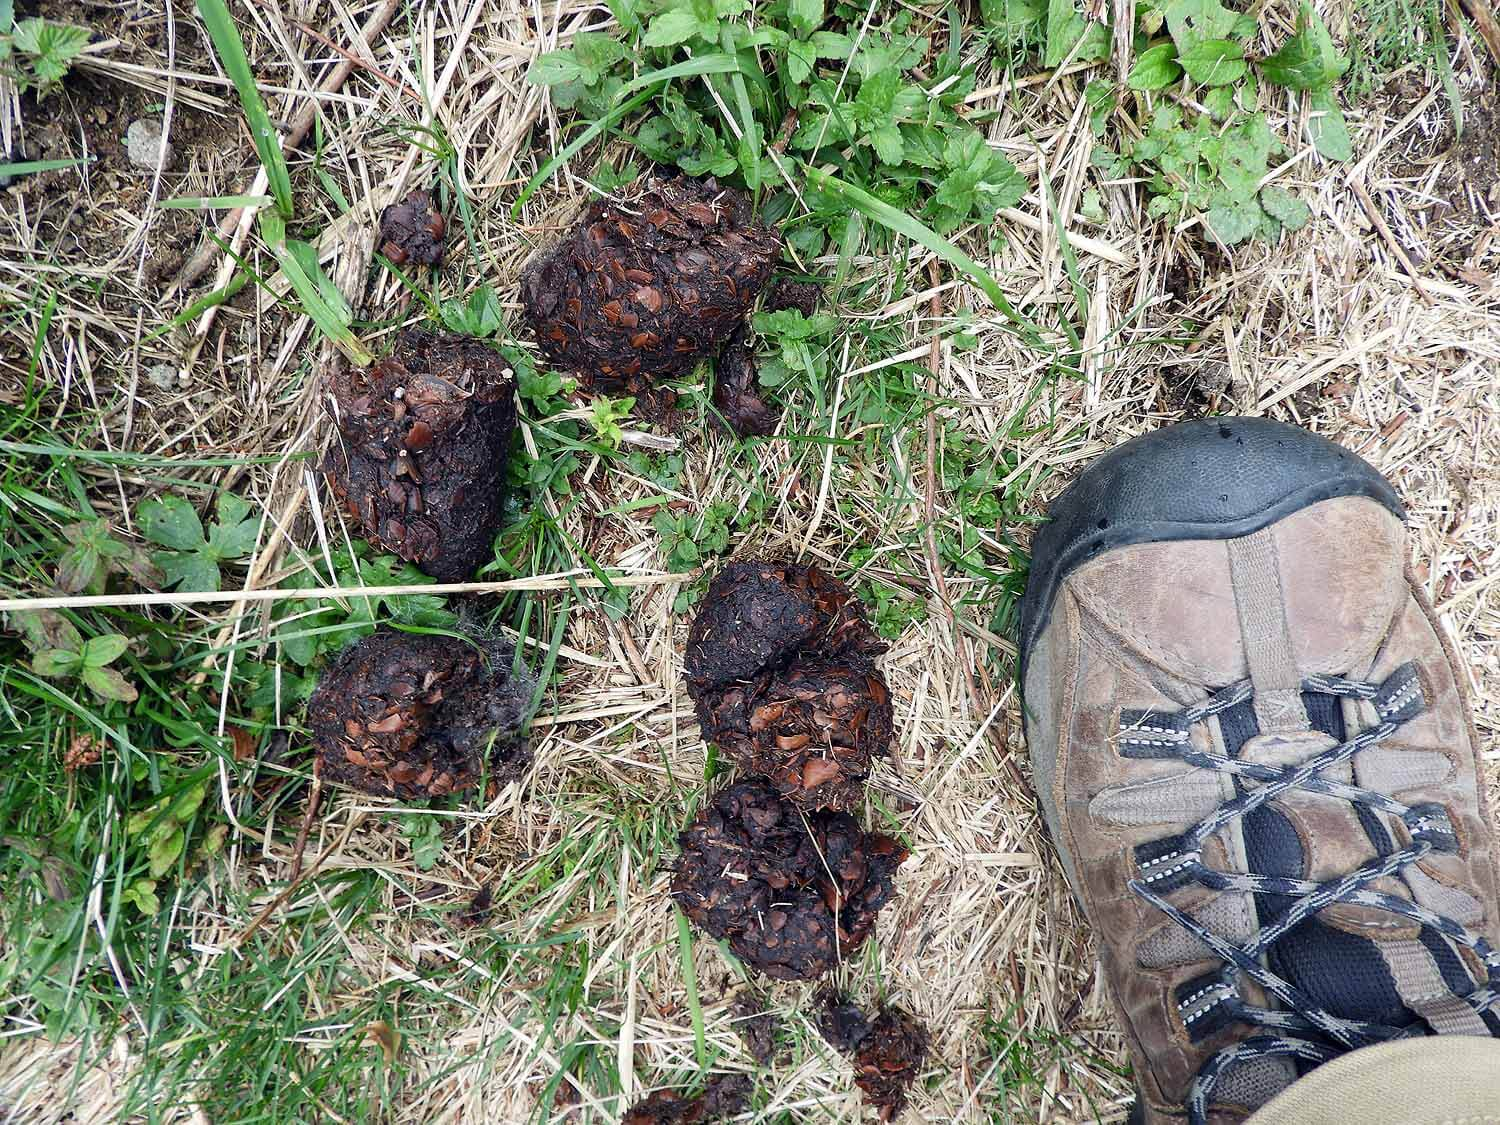 Bears - The forests around St Ann Lake are known for the abundance of wildlife. Bears frequent the area around the lake and signs warn hikers to be on the lookout. We came across pile of fresh bear scat on a few meters from the lake.